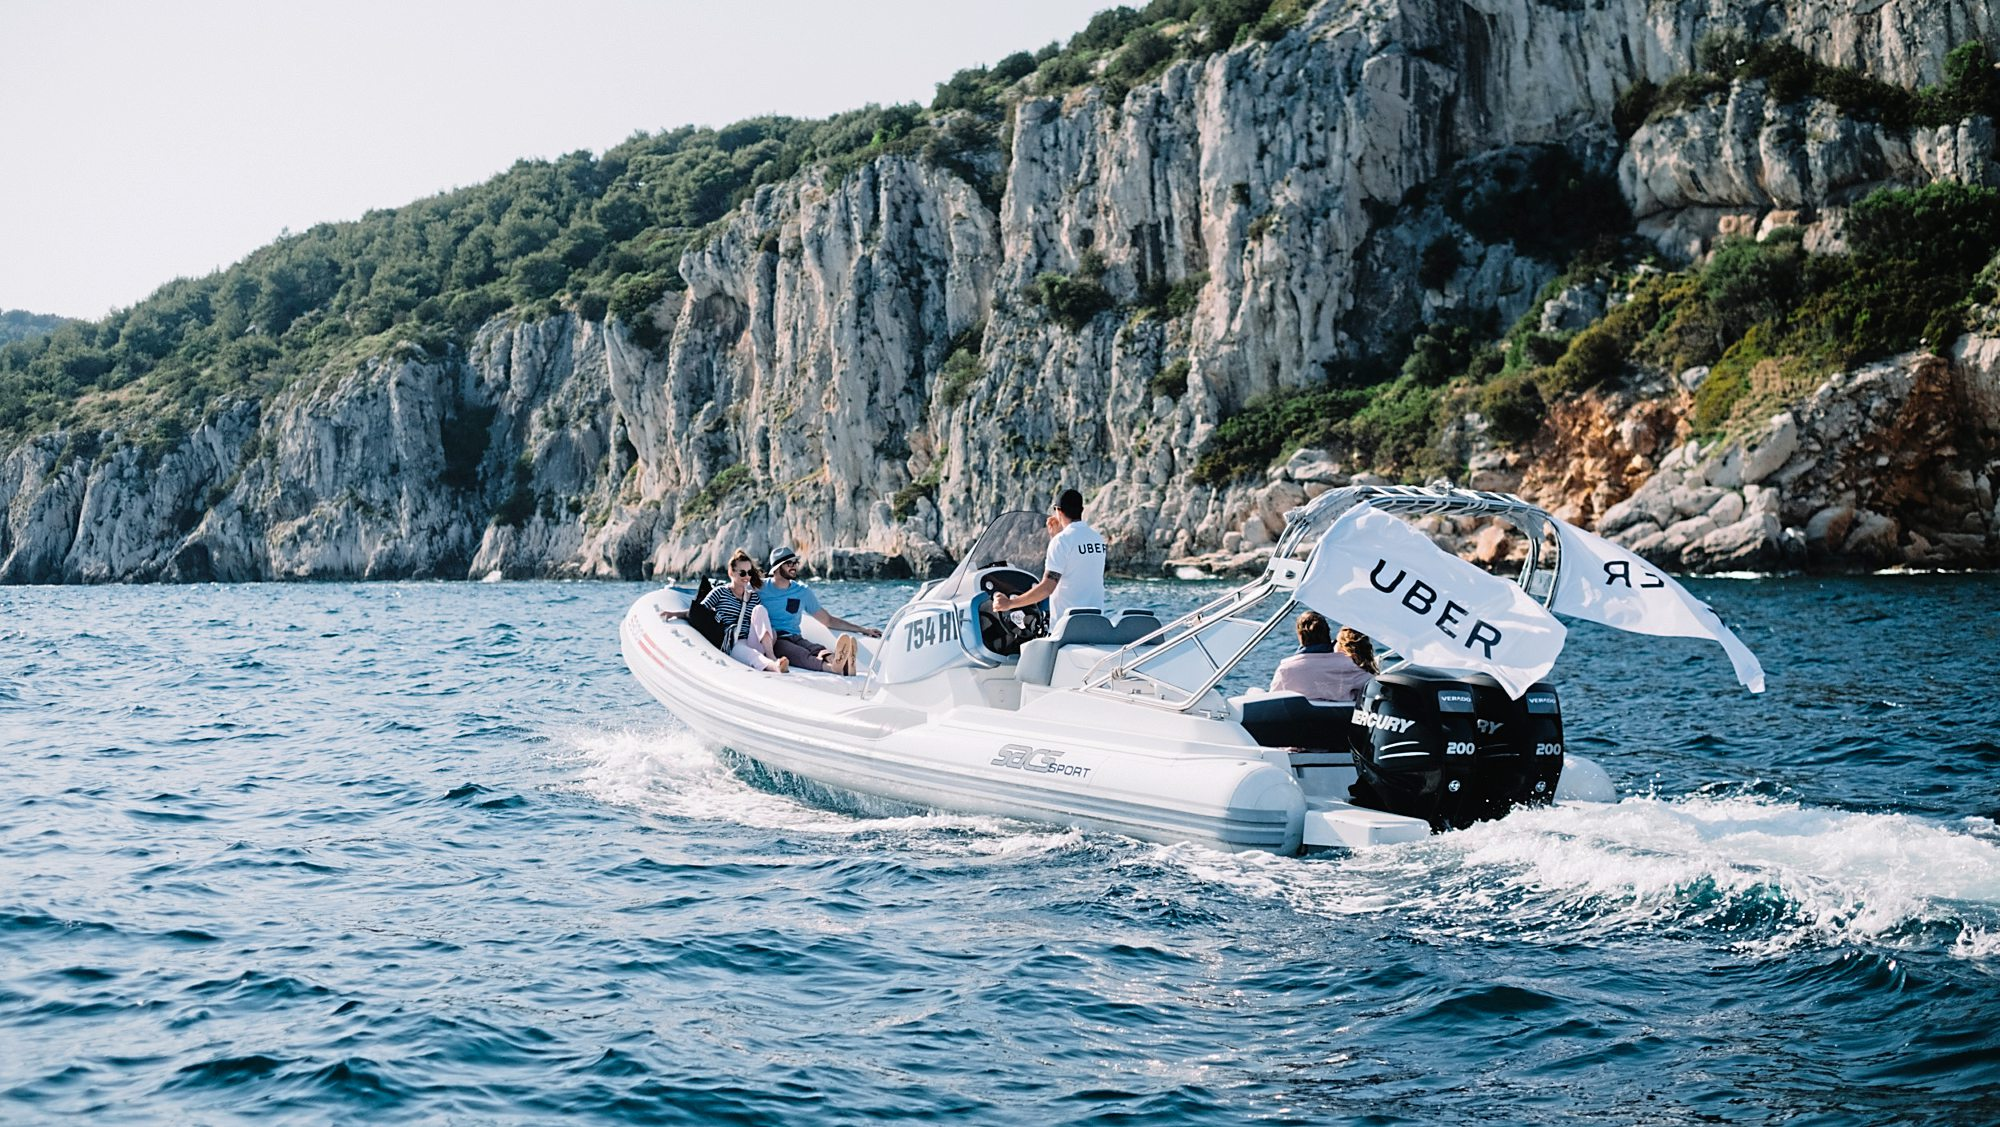 Schnellboot On Demand Uber Startet Boat In Kroatien